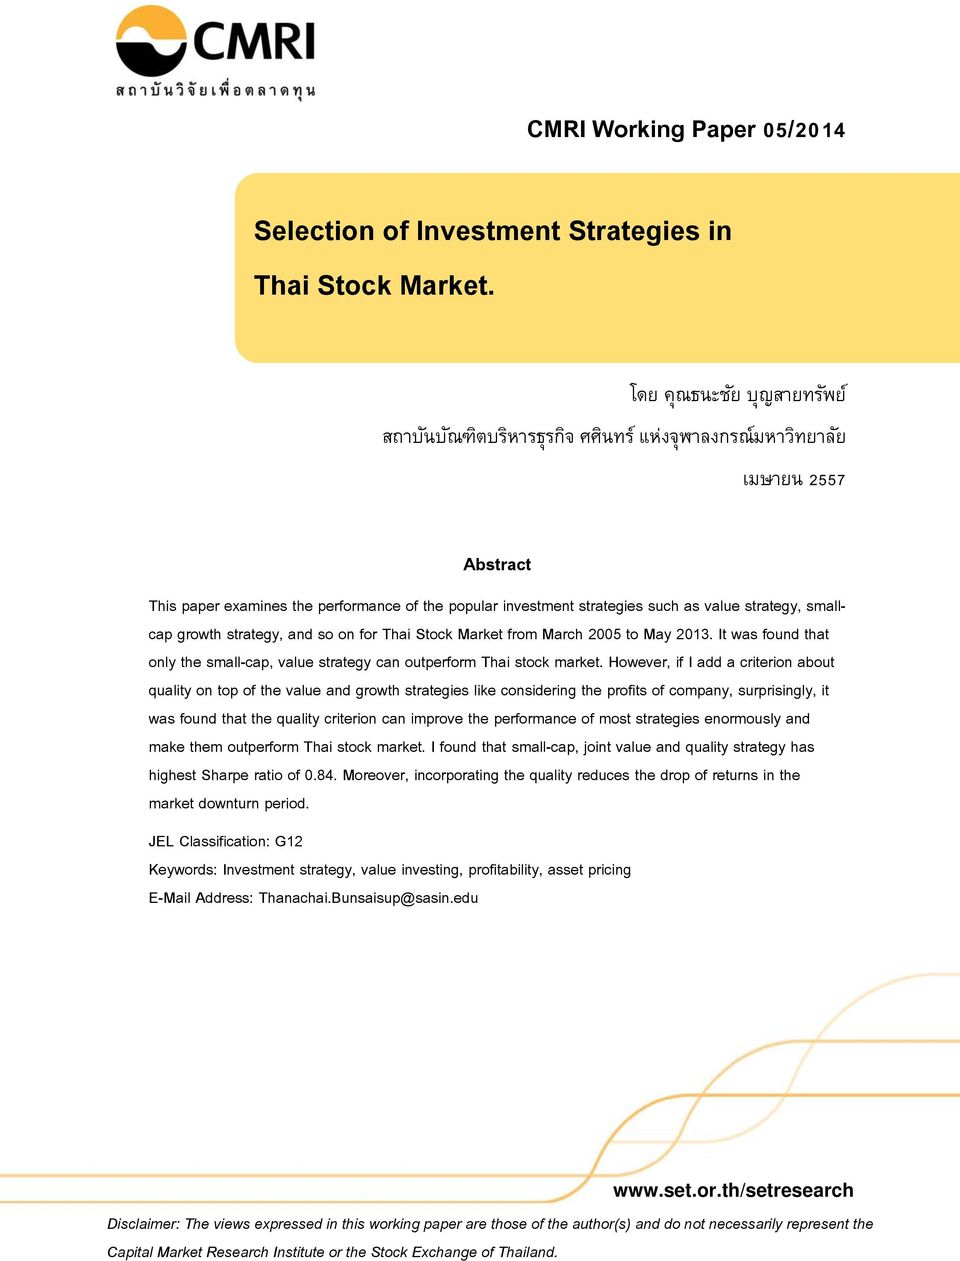 strategy, smallcap growth strategy, and so on for Thai Stock Market from March 2005 to May 2013. It was found that only the small-cap, value strategy can outperform Thai stock market.